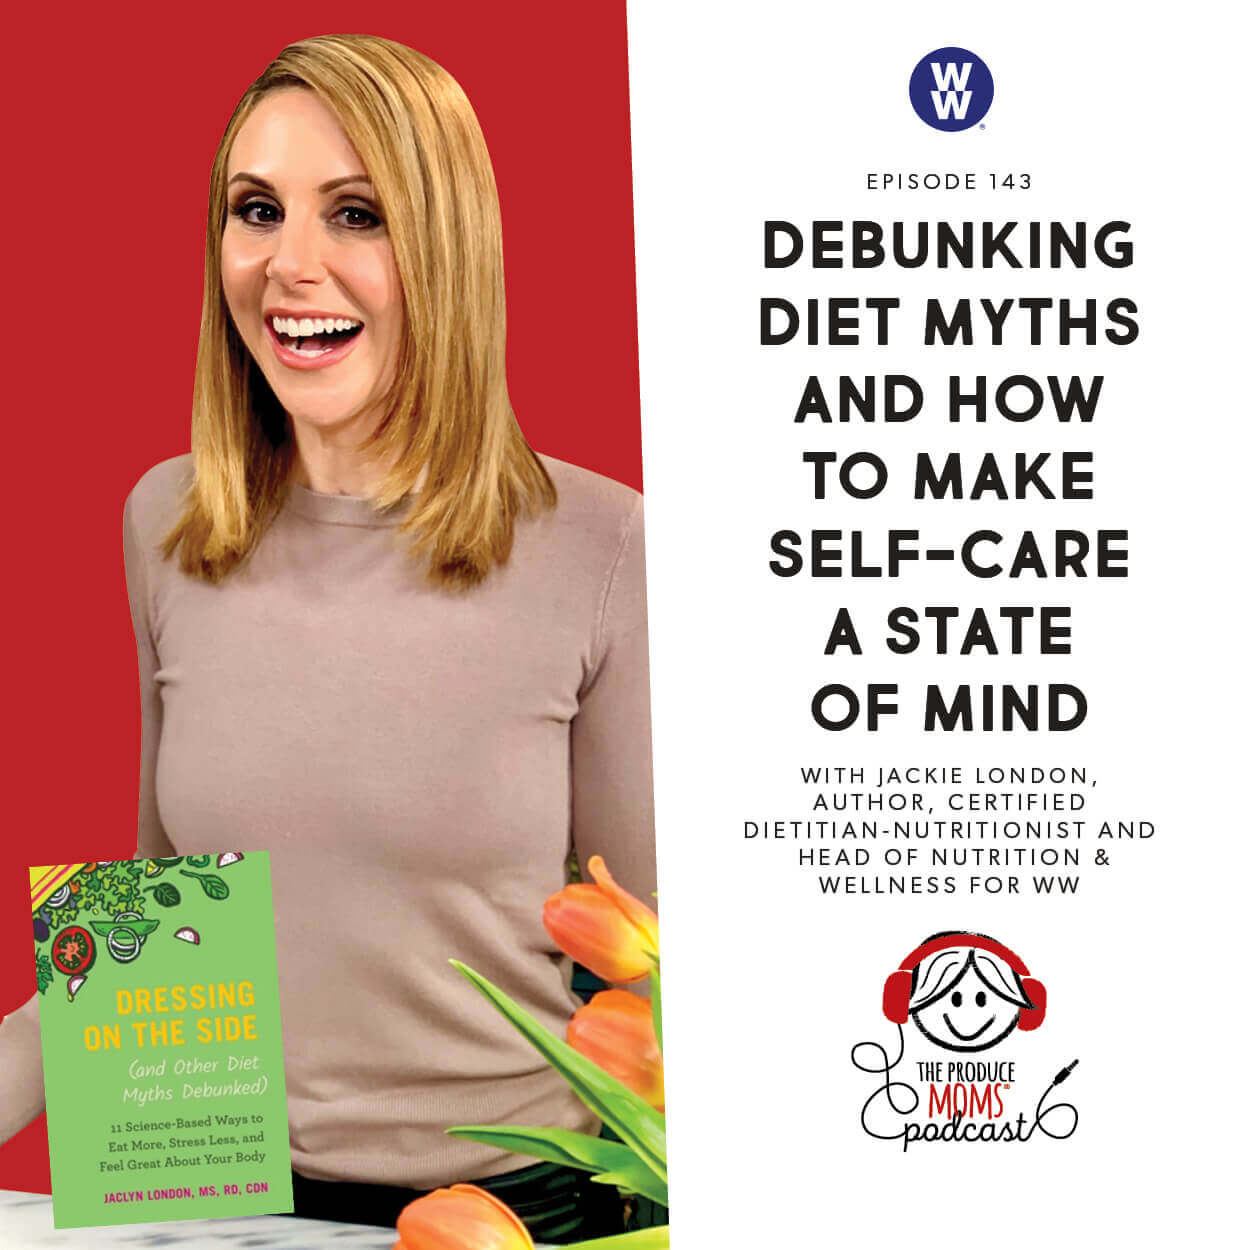 Episode 143: Debunking Diet Myths And How To Make Self-Care A State Of Mind With Jackie London, Author, Certified Dietitian-Nutritionist and Head of Nutrition & Wellness for WW